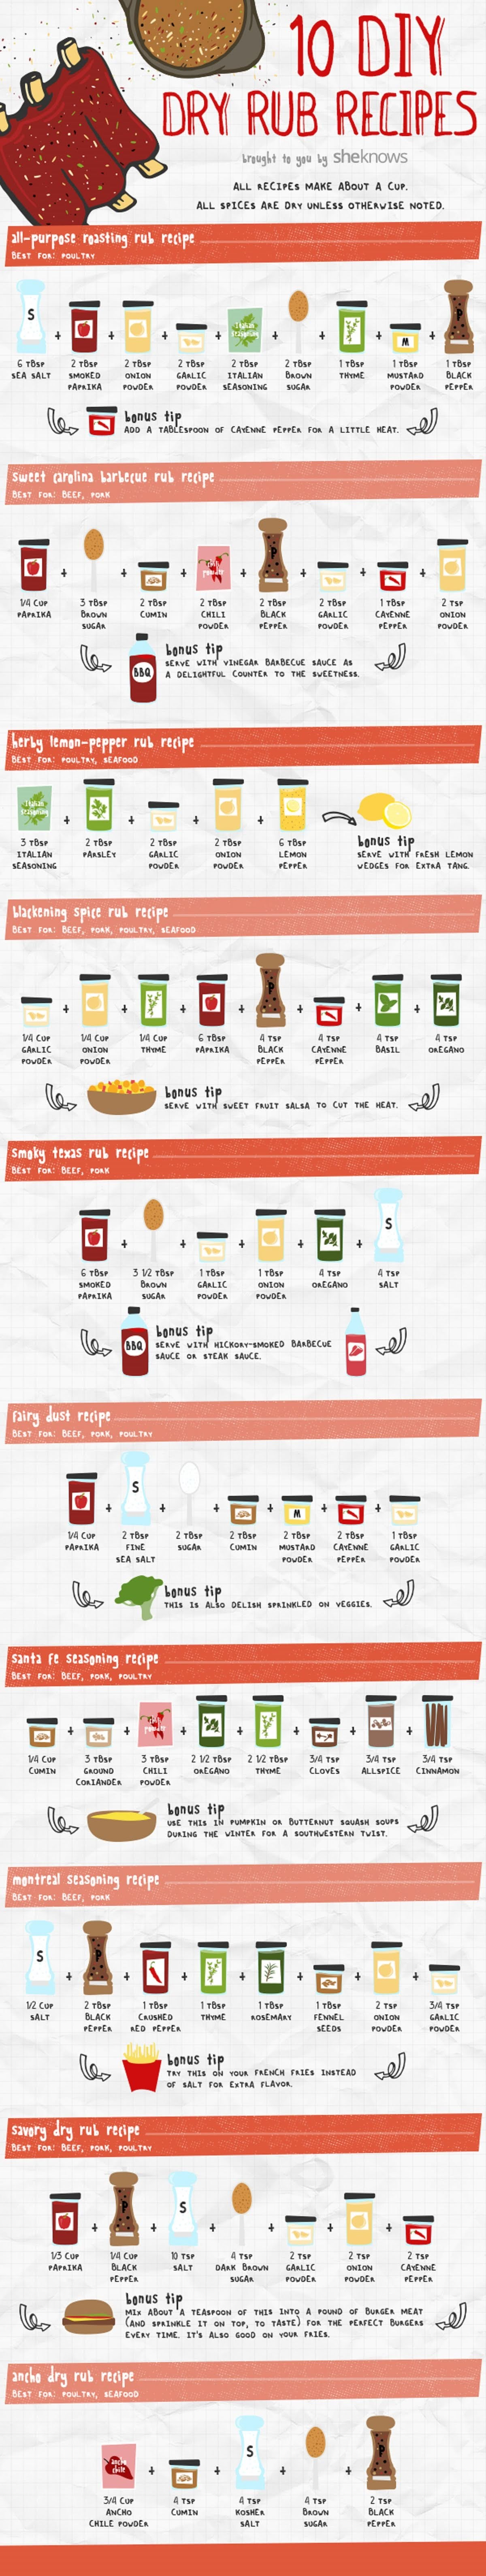 10-dry-rub-recipes-thatll-truly-up-your-bbq-game-infographic